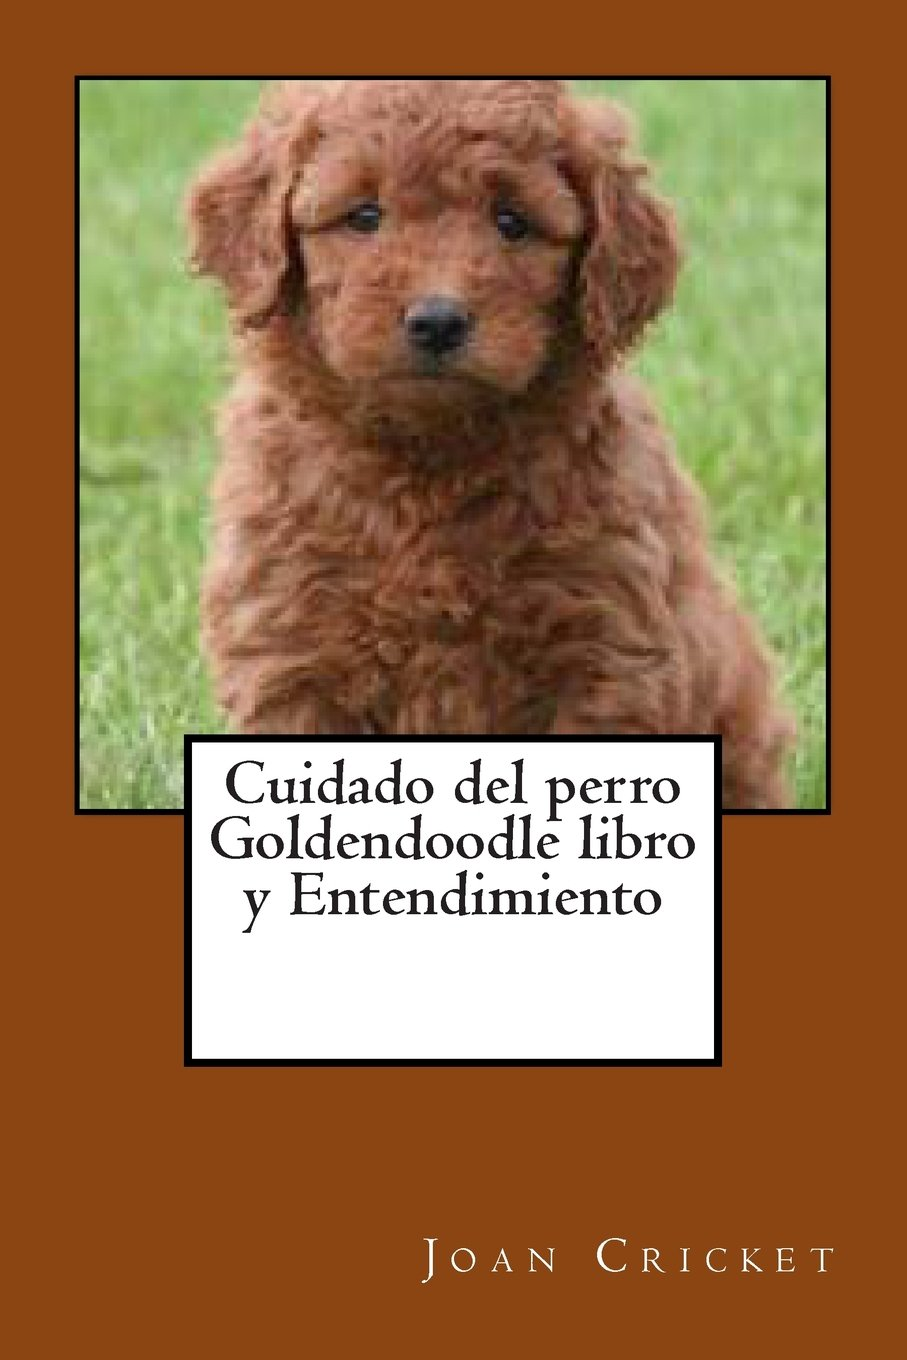 Cuidado del perro Goldendoodle libro y Entendimiento (Spanish Edition): Joan Cricket: 9781491210185: Amazon.com: Books